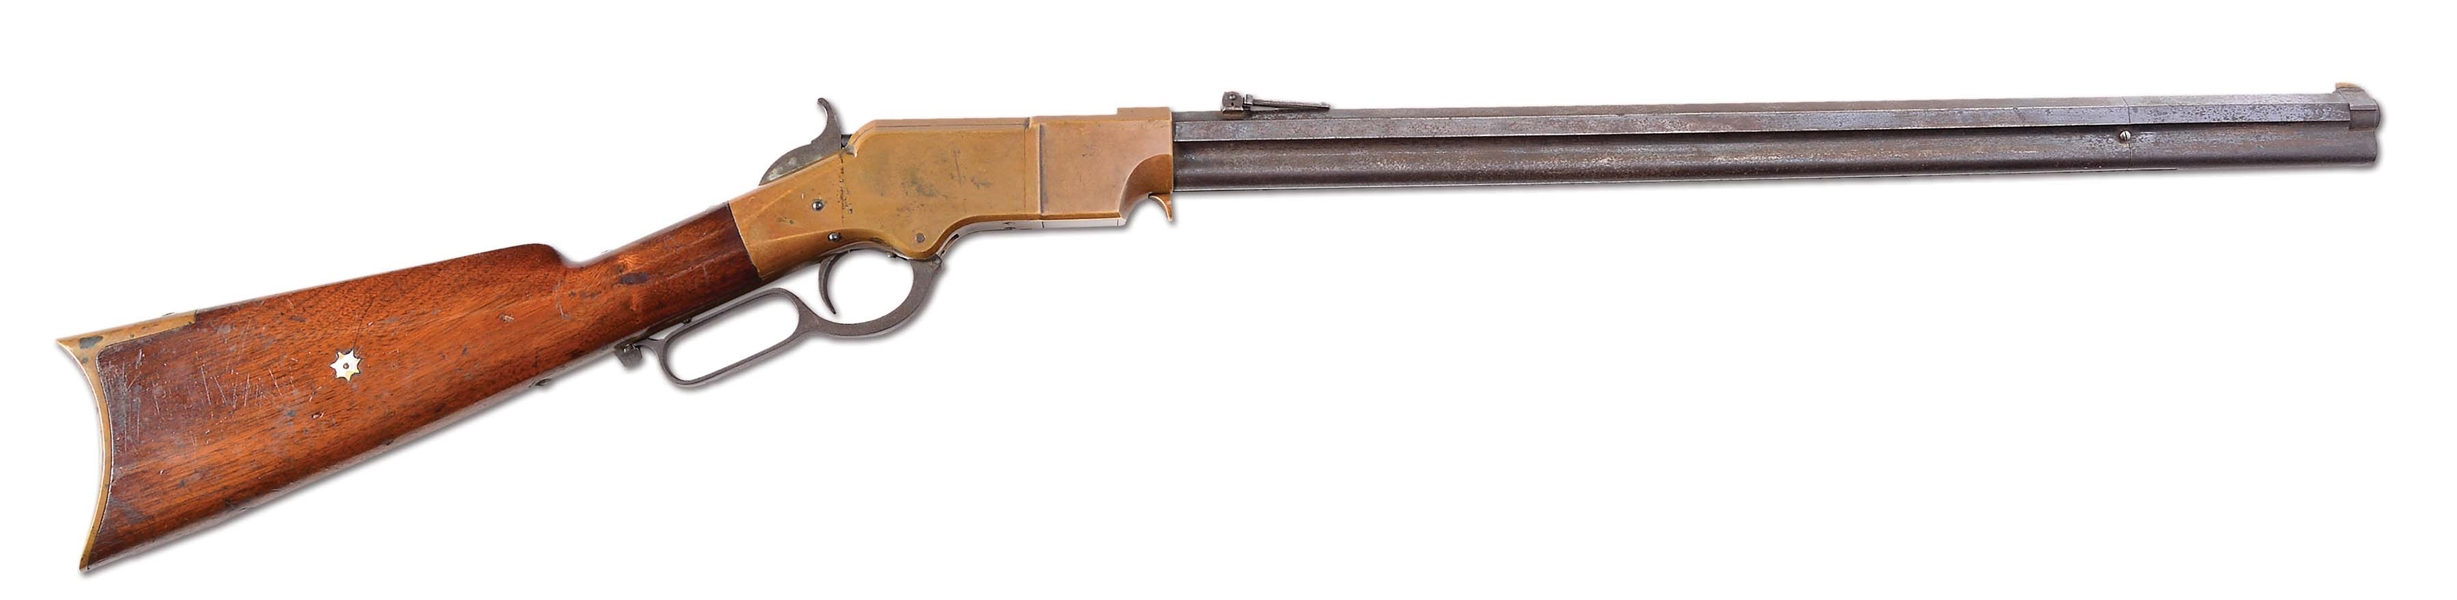 (A) NEW HAVEN ARMS HENRY LEVER ACTION RIFLE (1864).